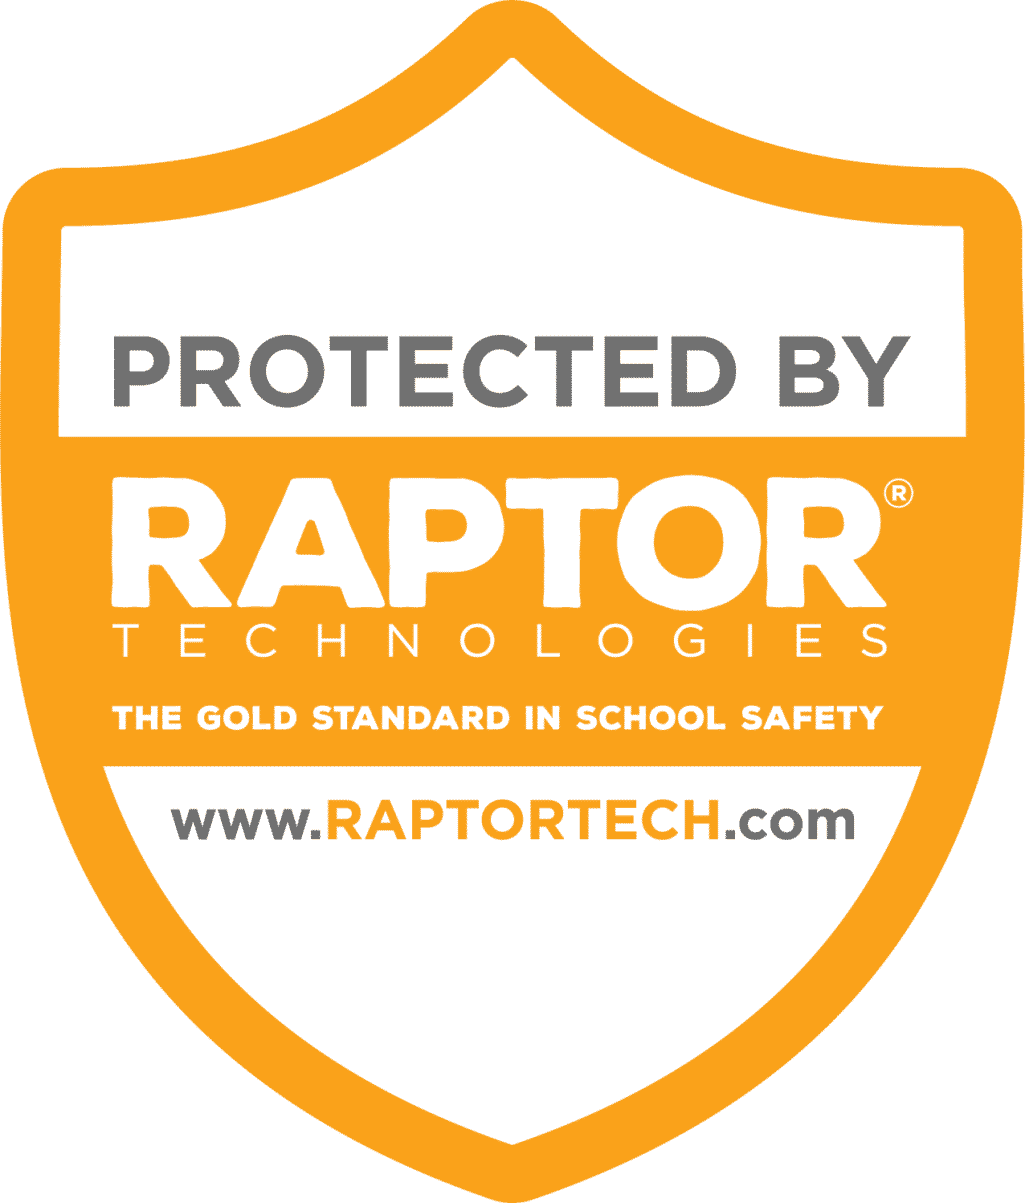 Protected by Raptor Technologies